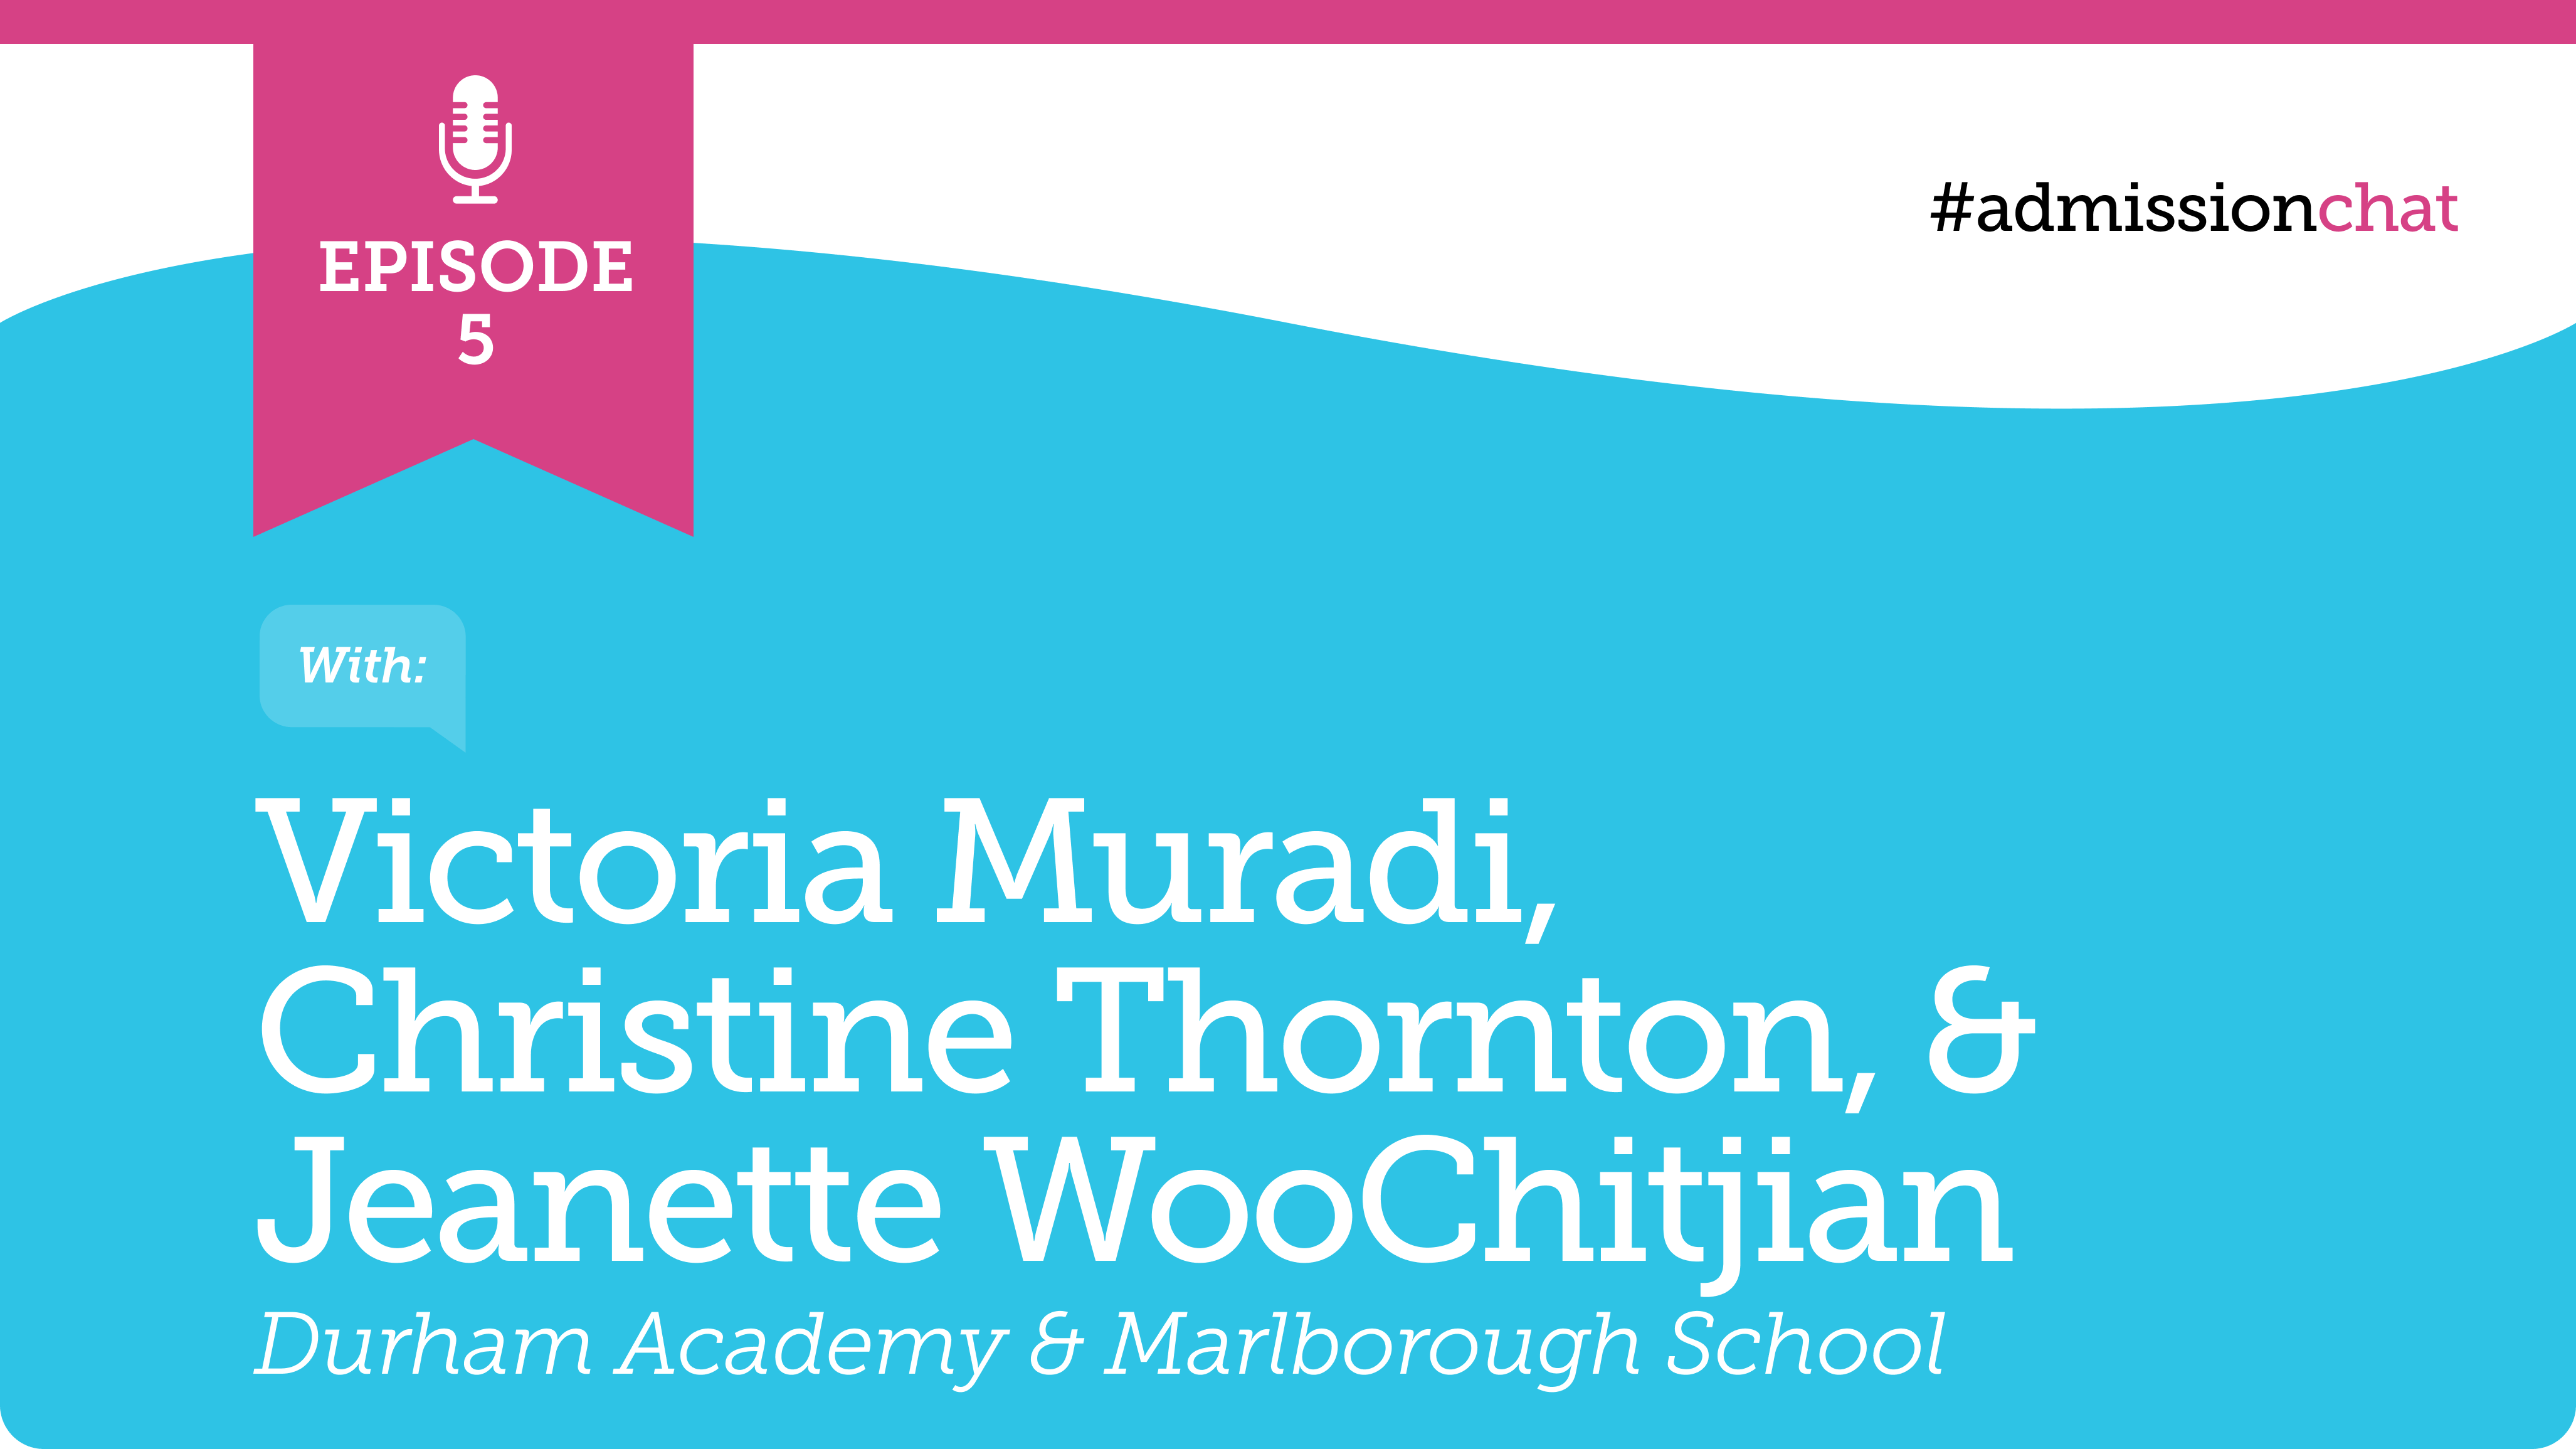 #admissionchat episode five with Victoria Muradi, Christine Thornton, Jeanette WooChitjian discussing the Character Skills Snapshot.